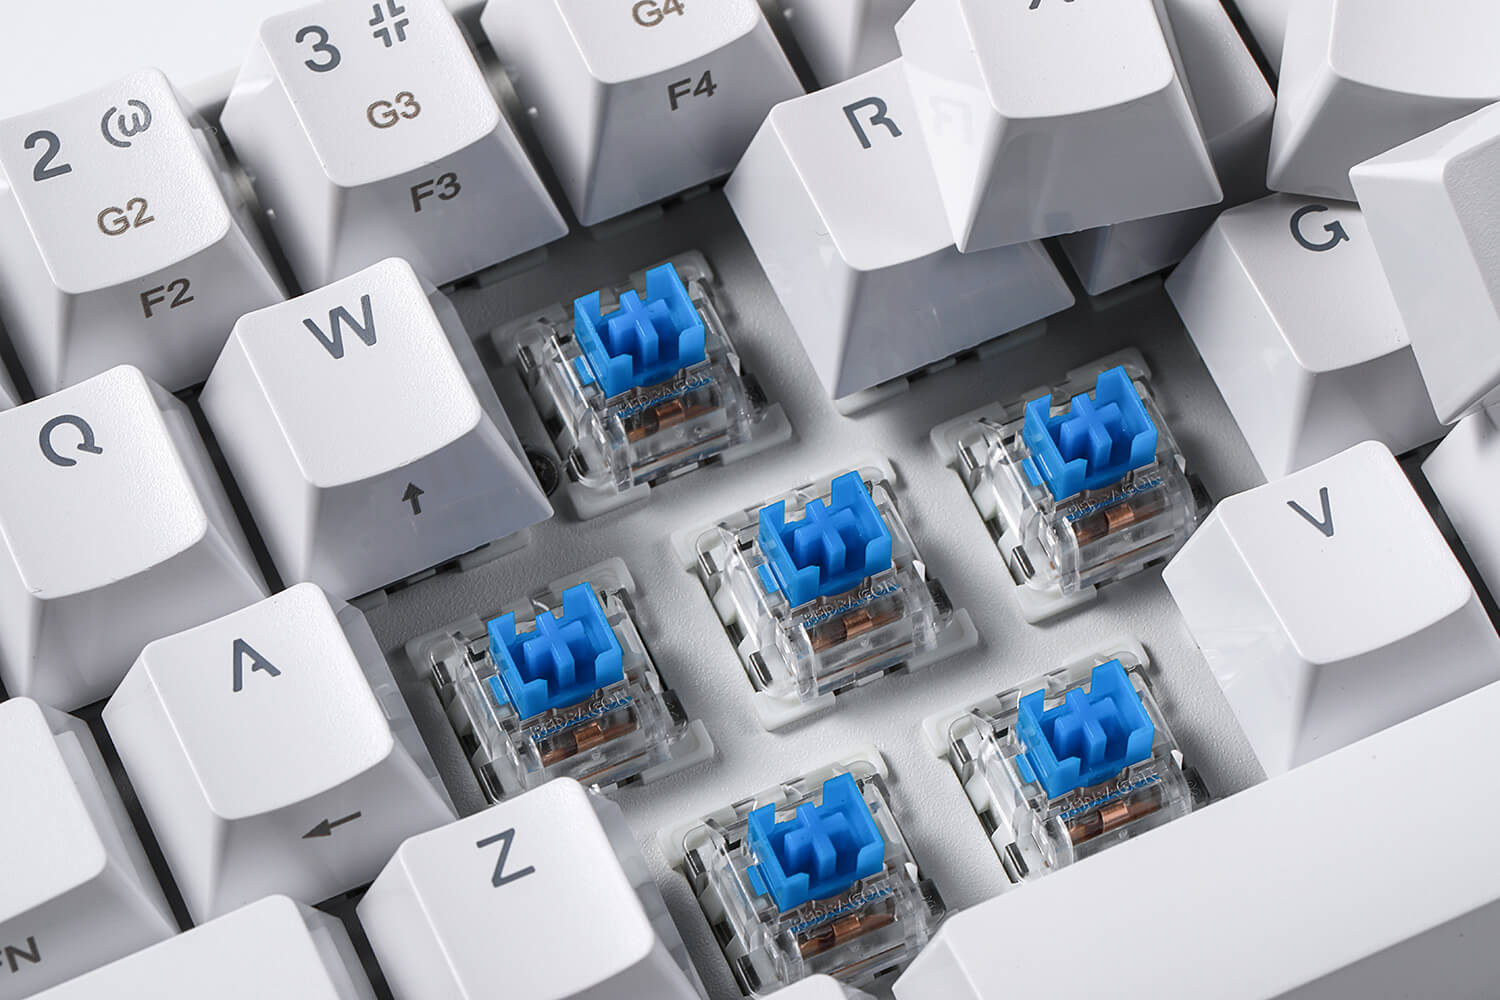 60% keyboard layout blue switches